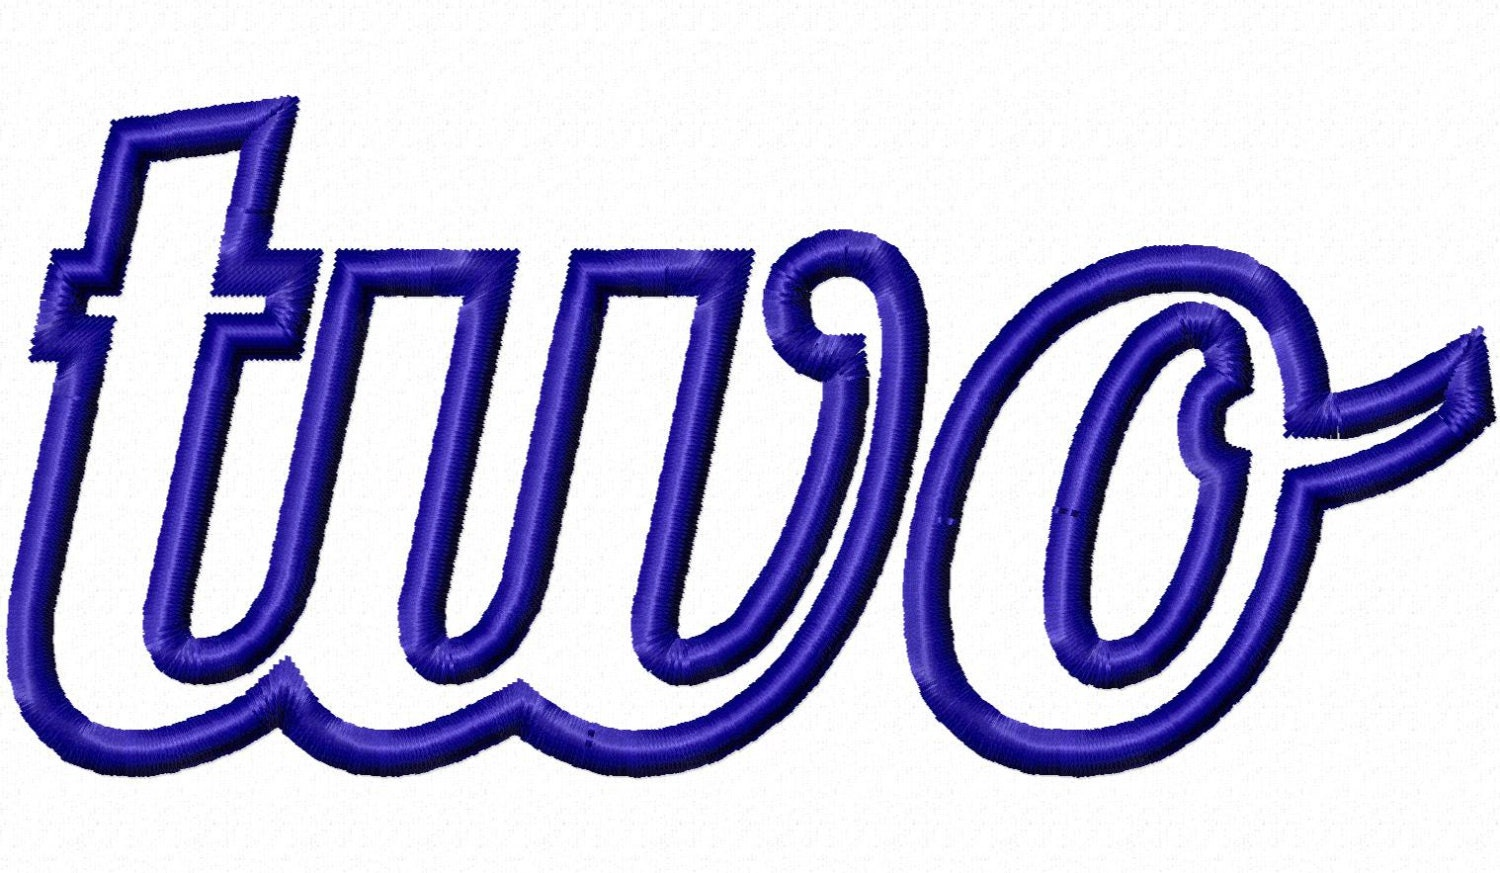 Applique word two machine embroidery design by